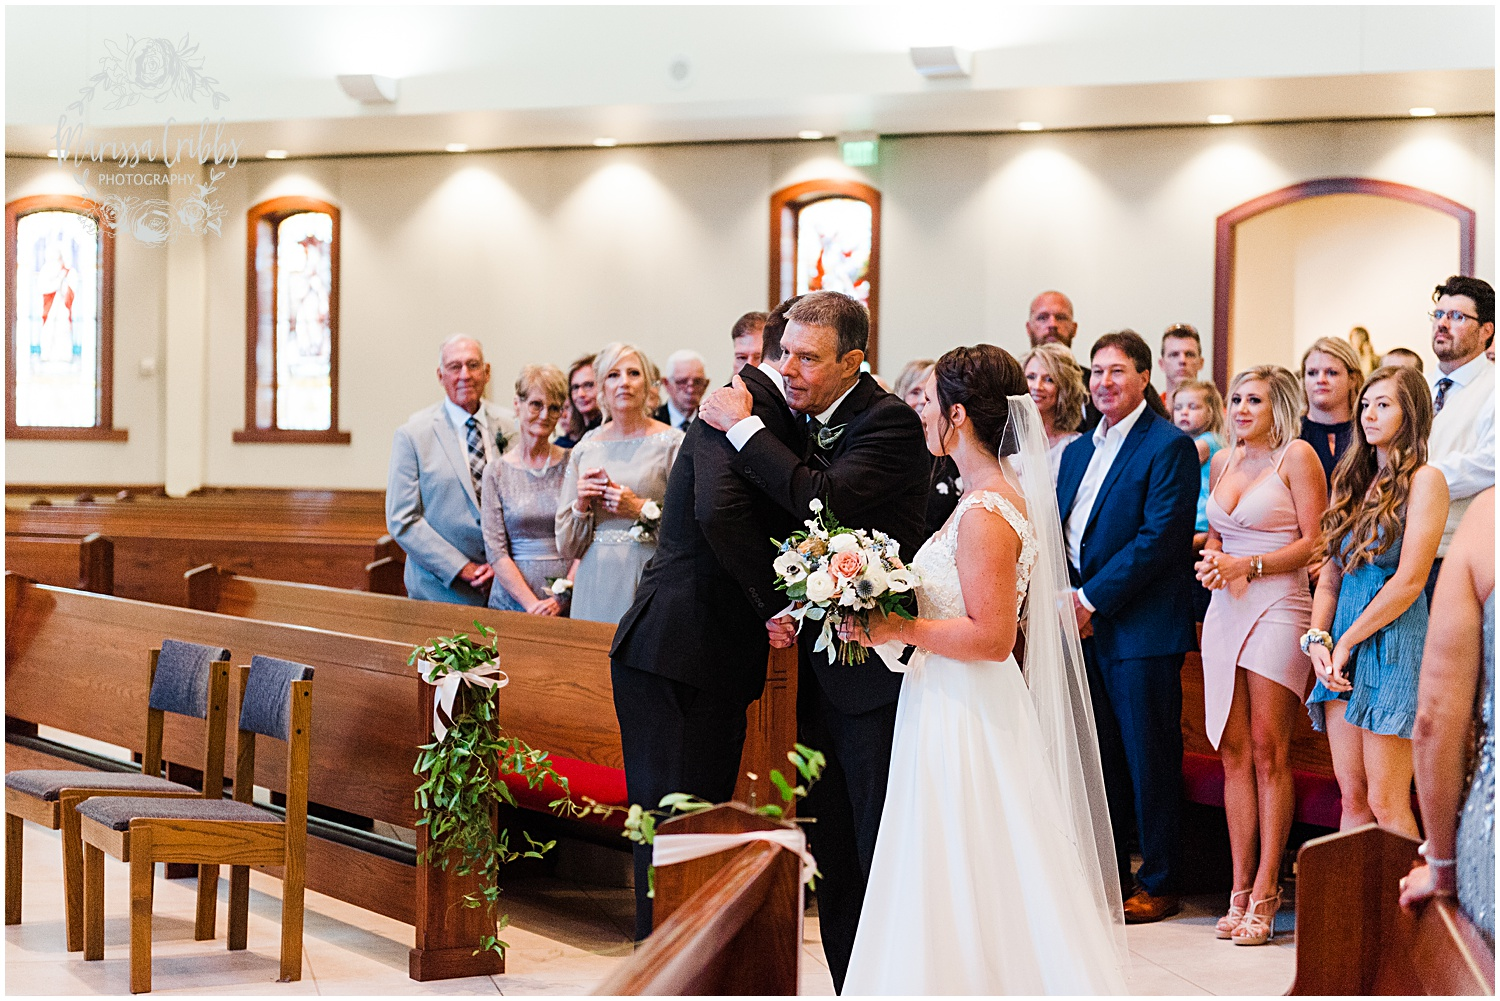 KELLY & MITCH MARRIED BLOG | MARISSA CRIBBS PHOTOGRAPHY | THE EVERLY EVENT SPACE_8834.jpg